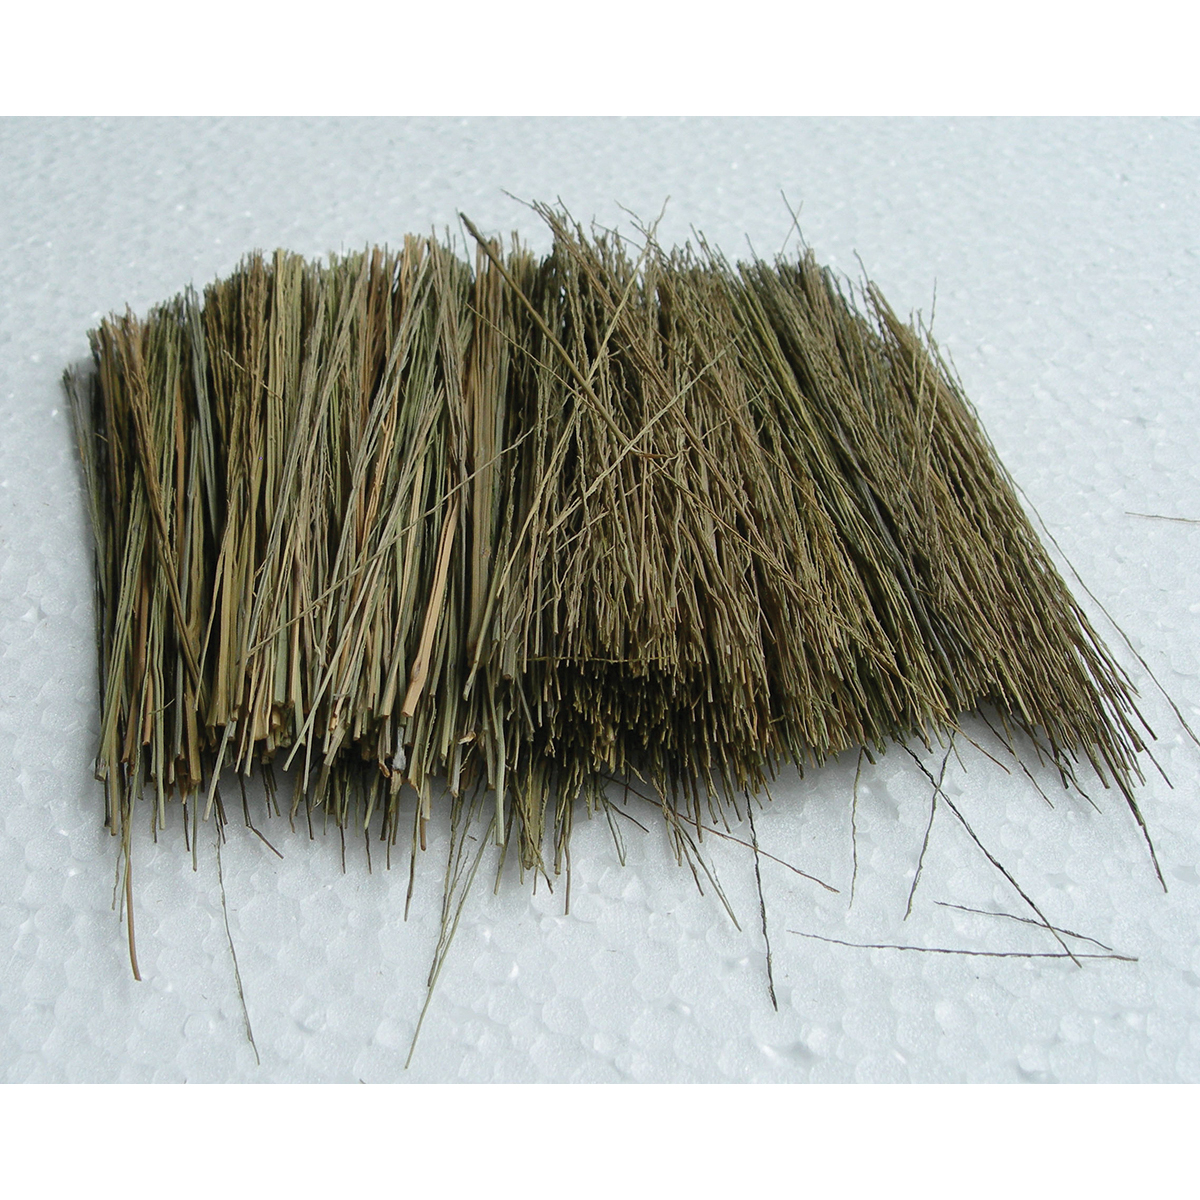 Field Grass 10g-Natural Brown